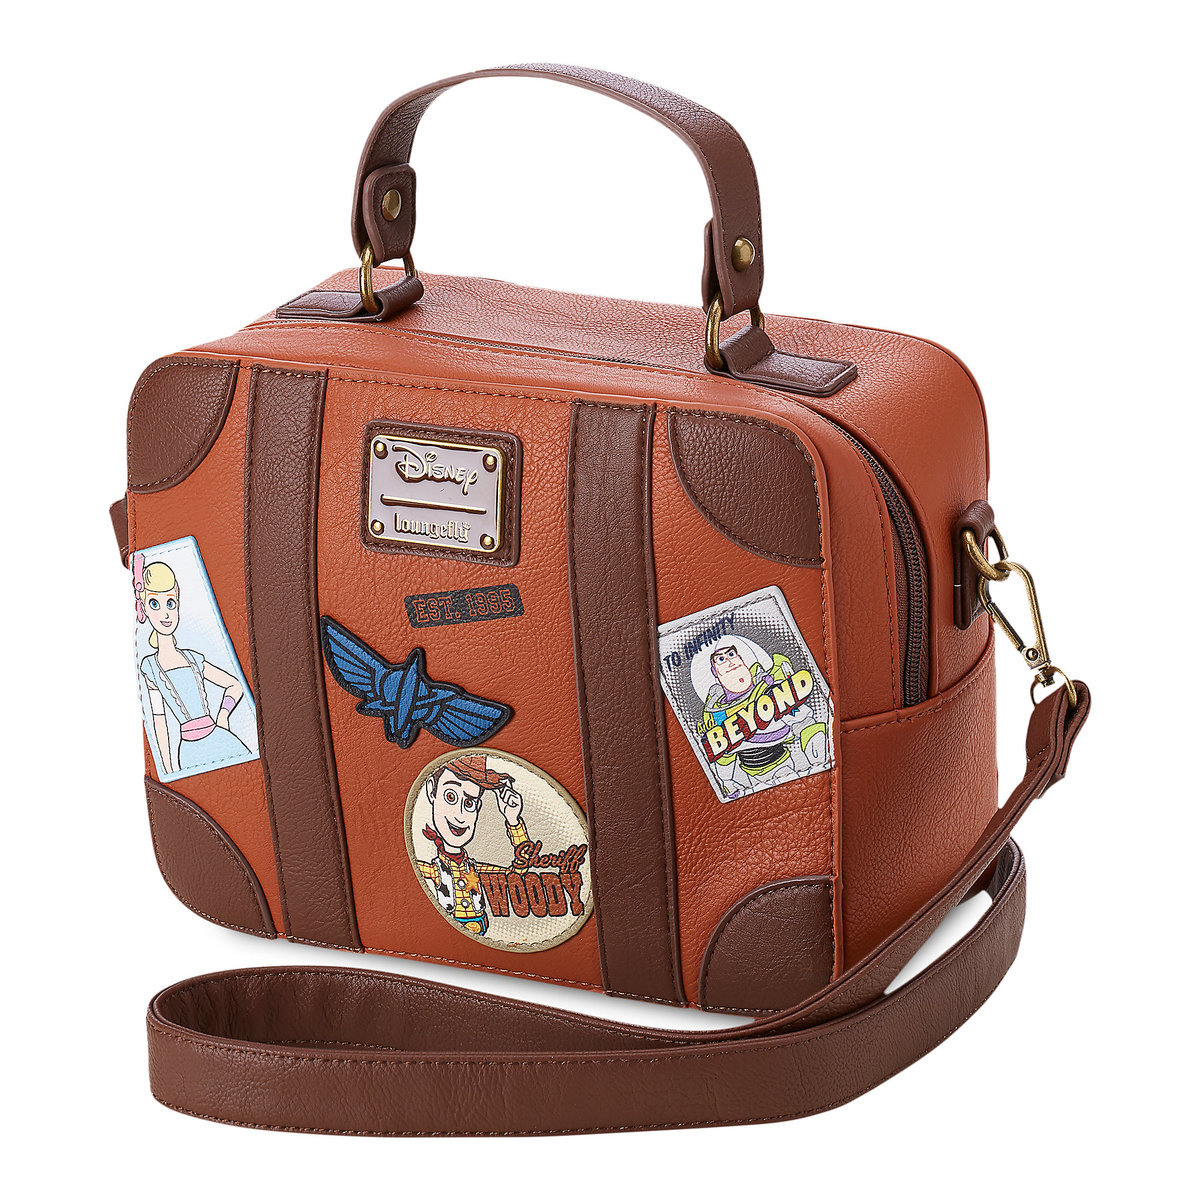 8c1af0f77f Product Image of Toy Story 4 Crossbody Bag by Loungefly # 1